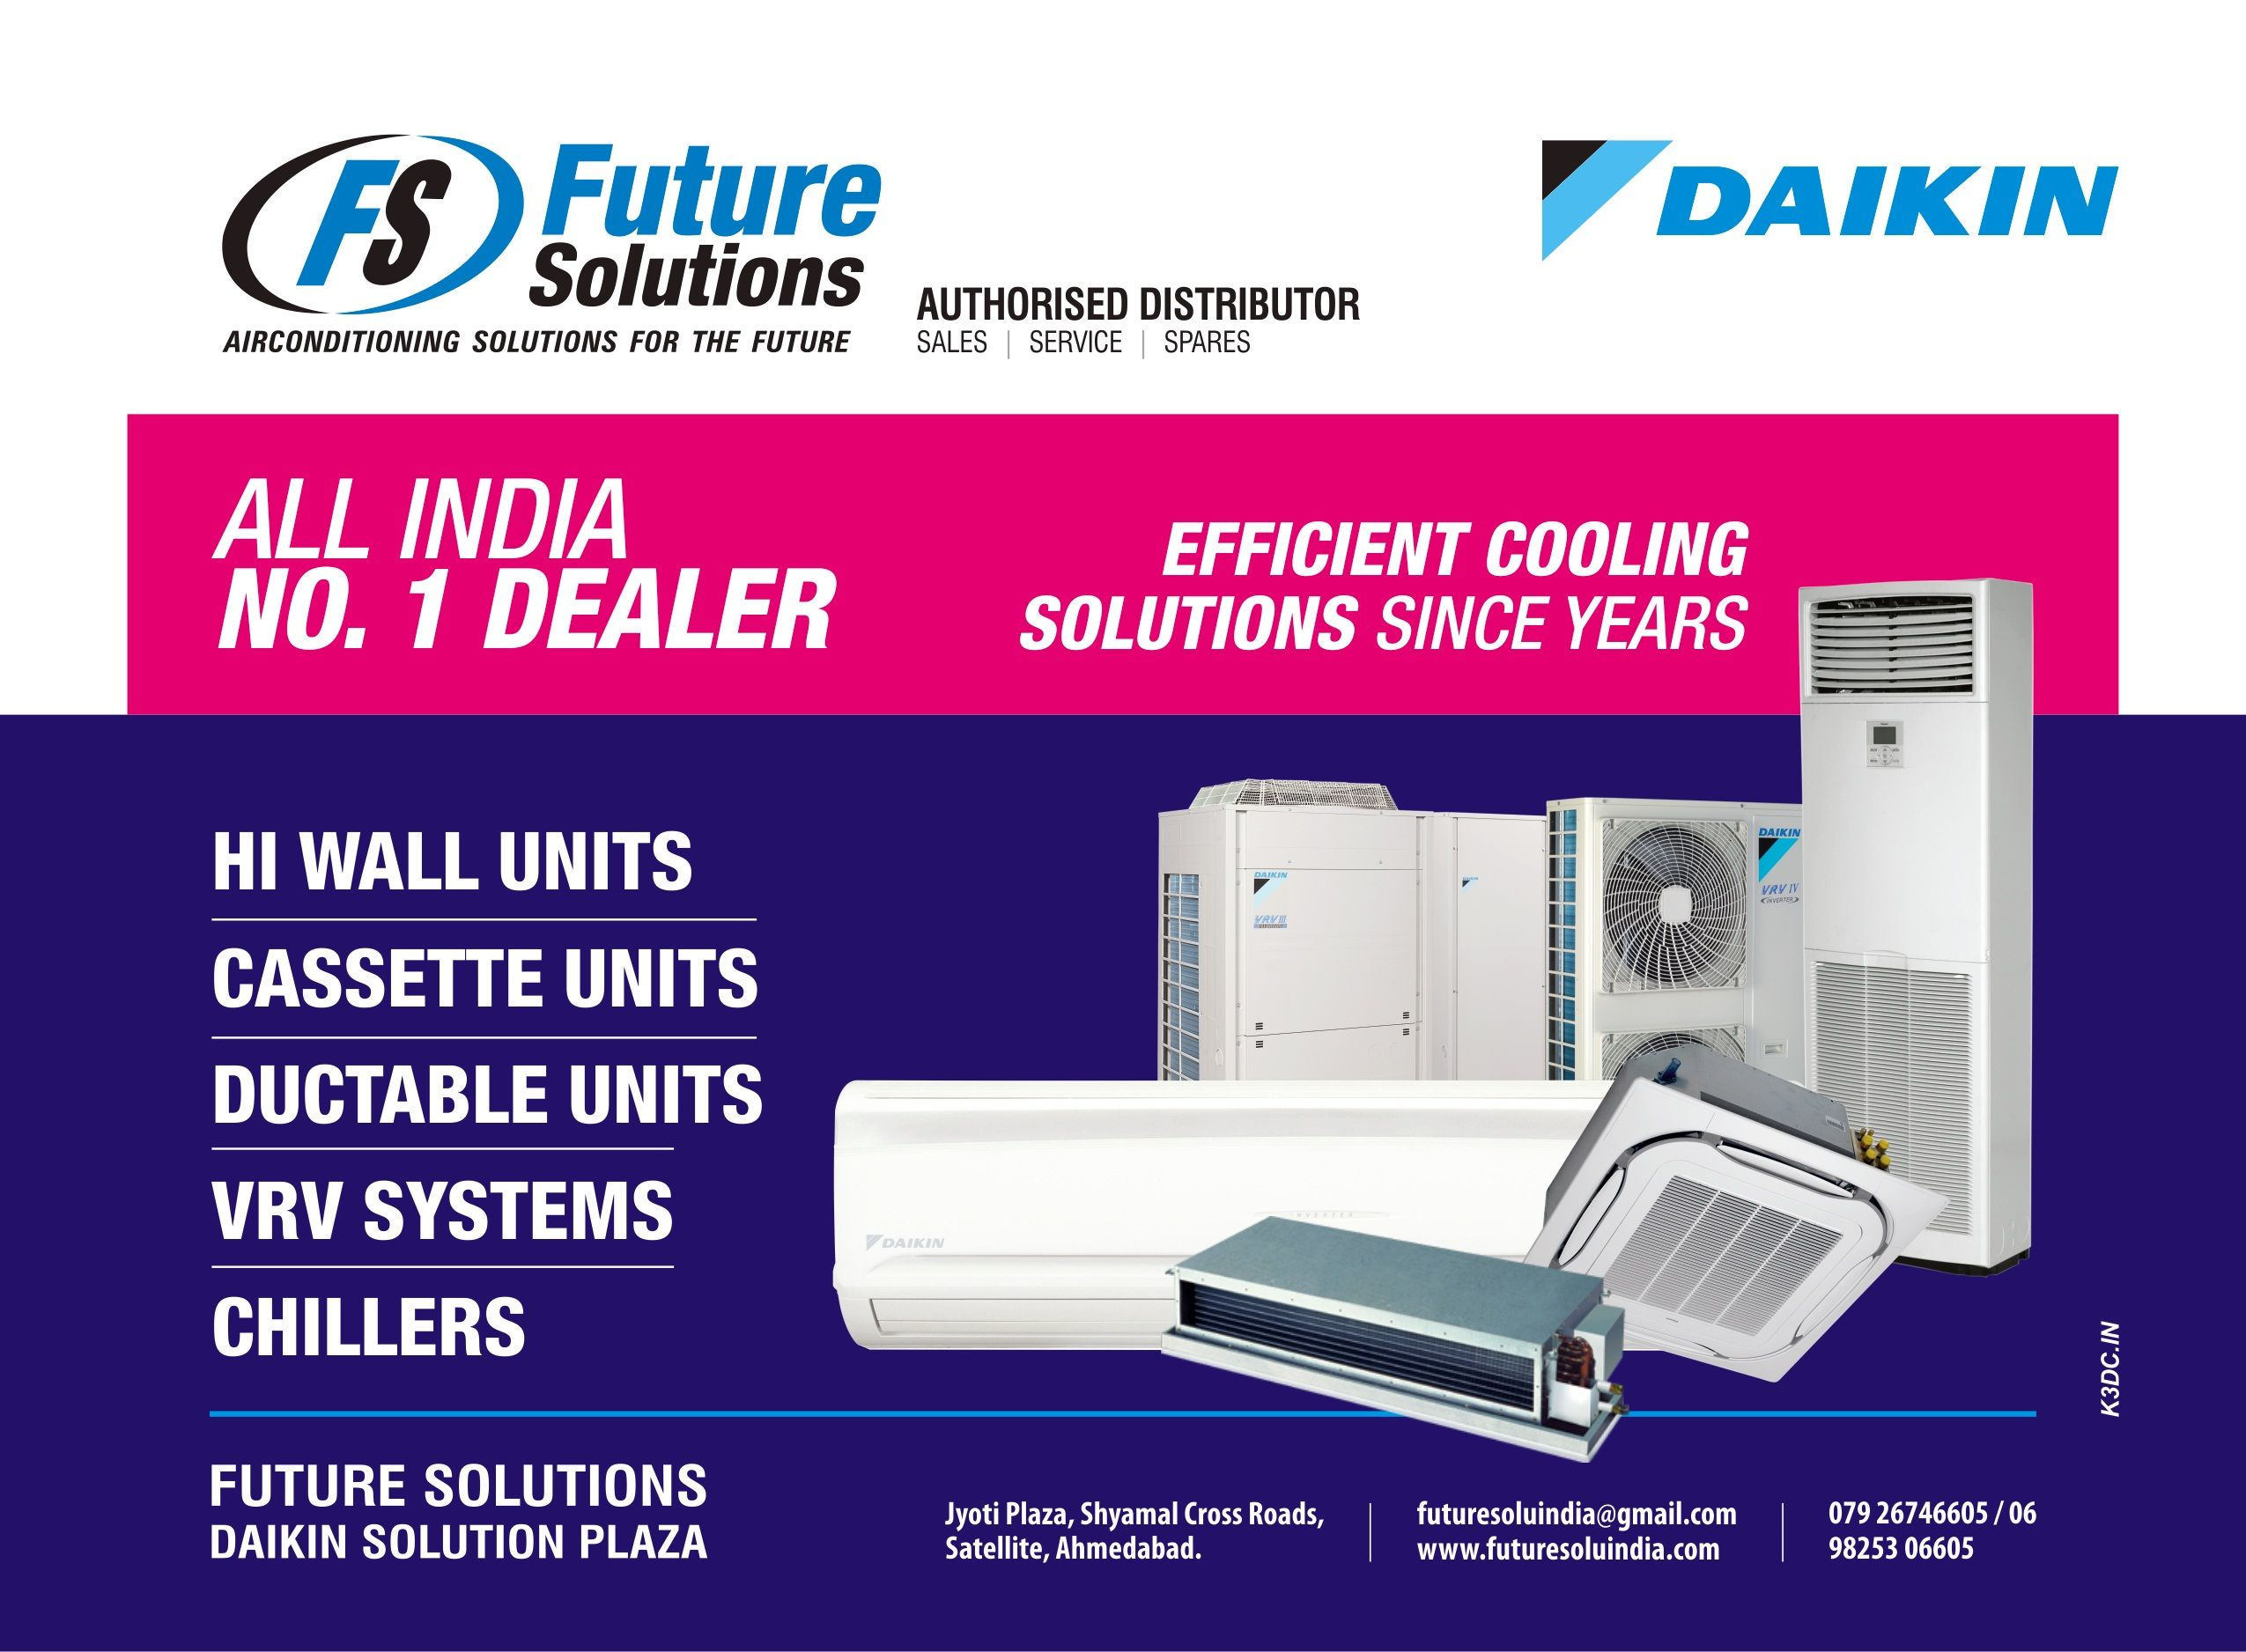 Future Solution Is Took Up Daikin Dealership And Air Conditioning